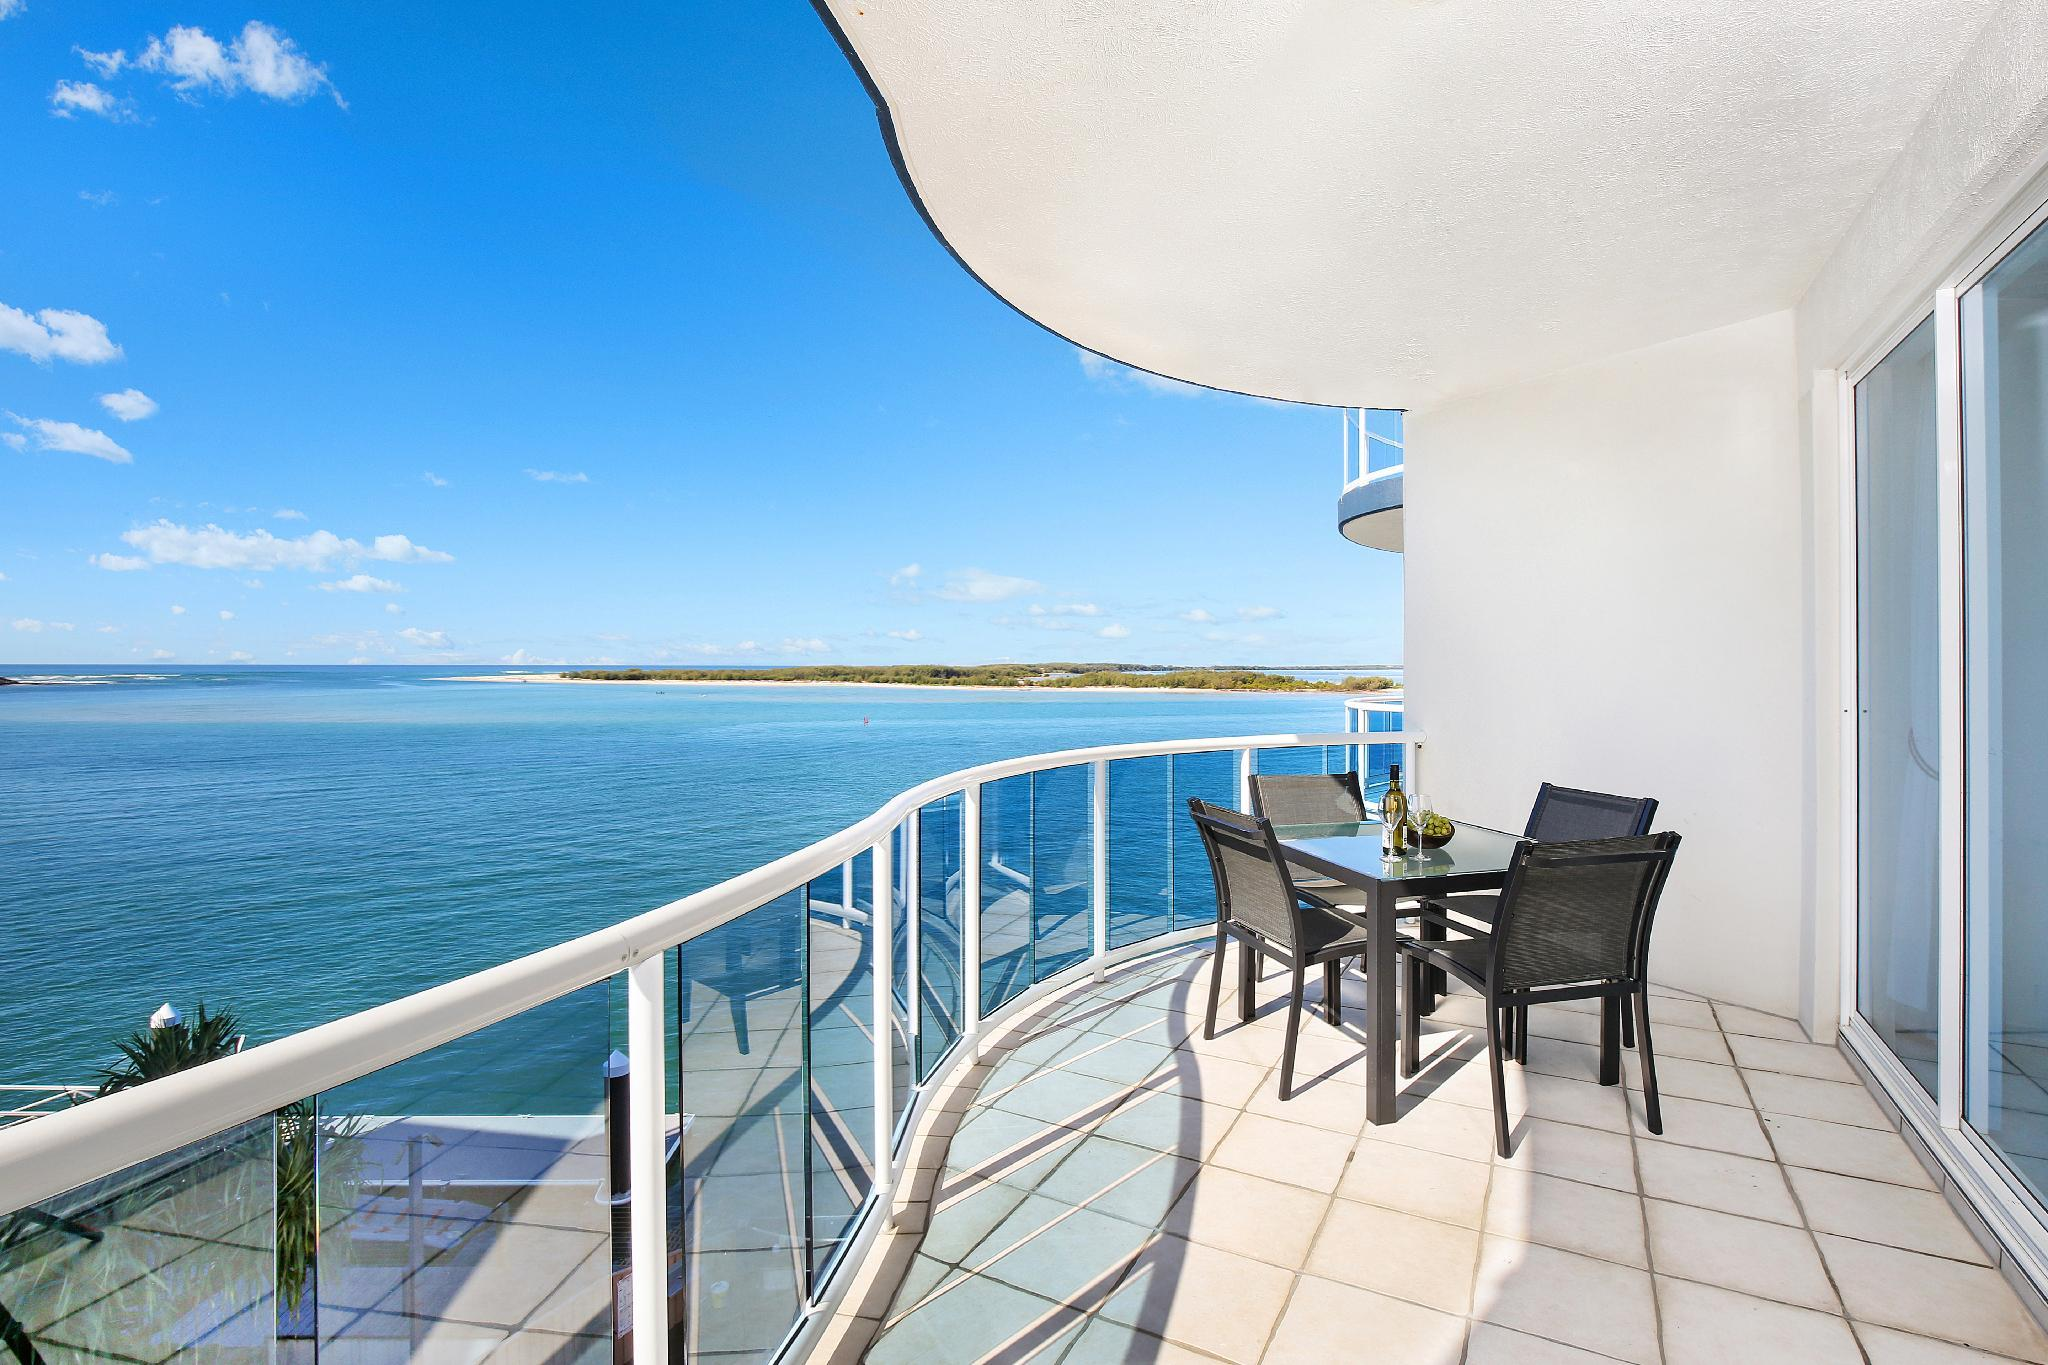 2 Bedroom Penthouse Ocean View